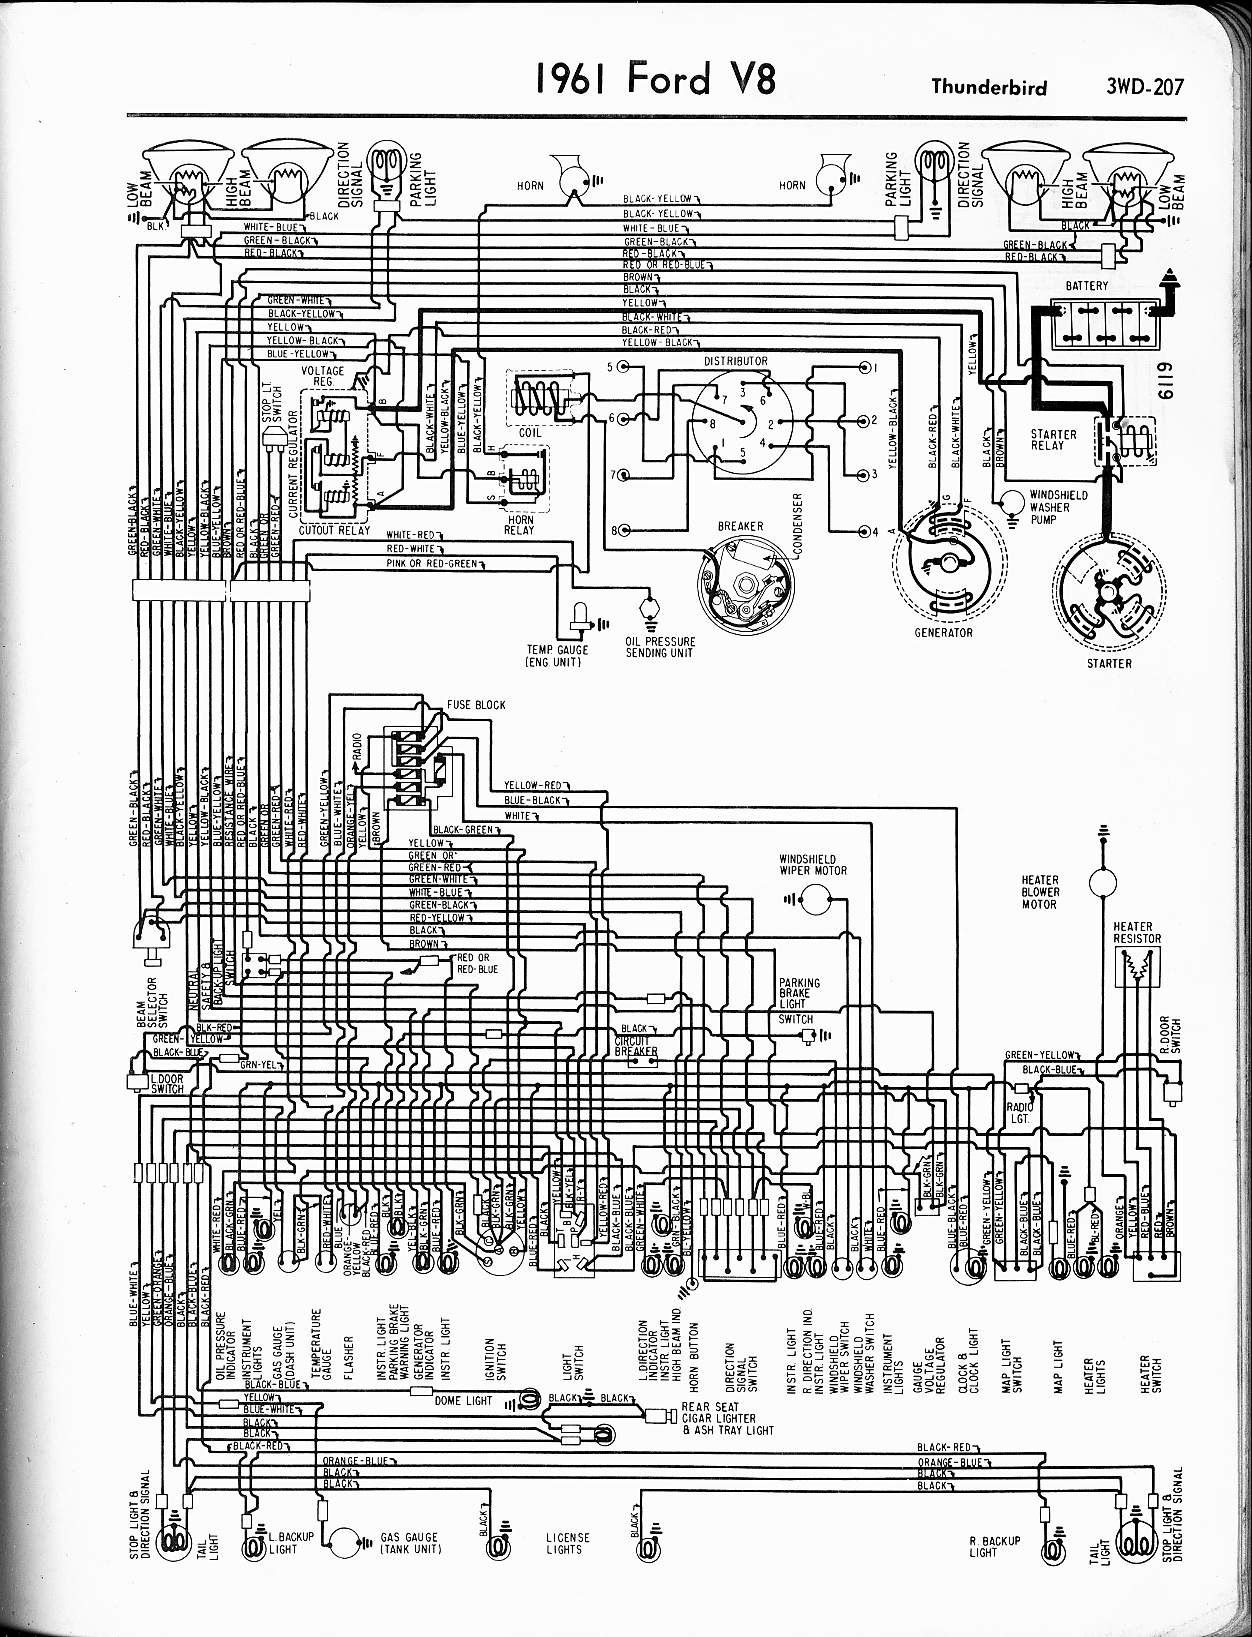 1967 Thunderbird Wiring Diagram Free Worksheet And Ford Truck 1956 Fairlane Schematics Rh Sylviaexpress Com 1964